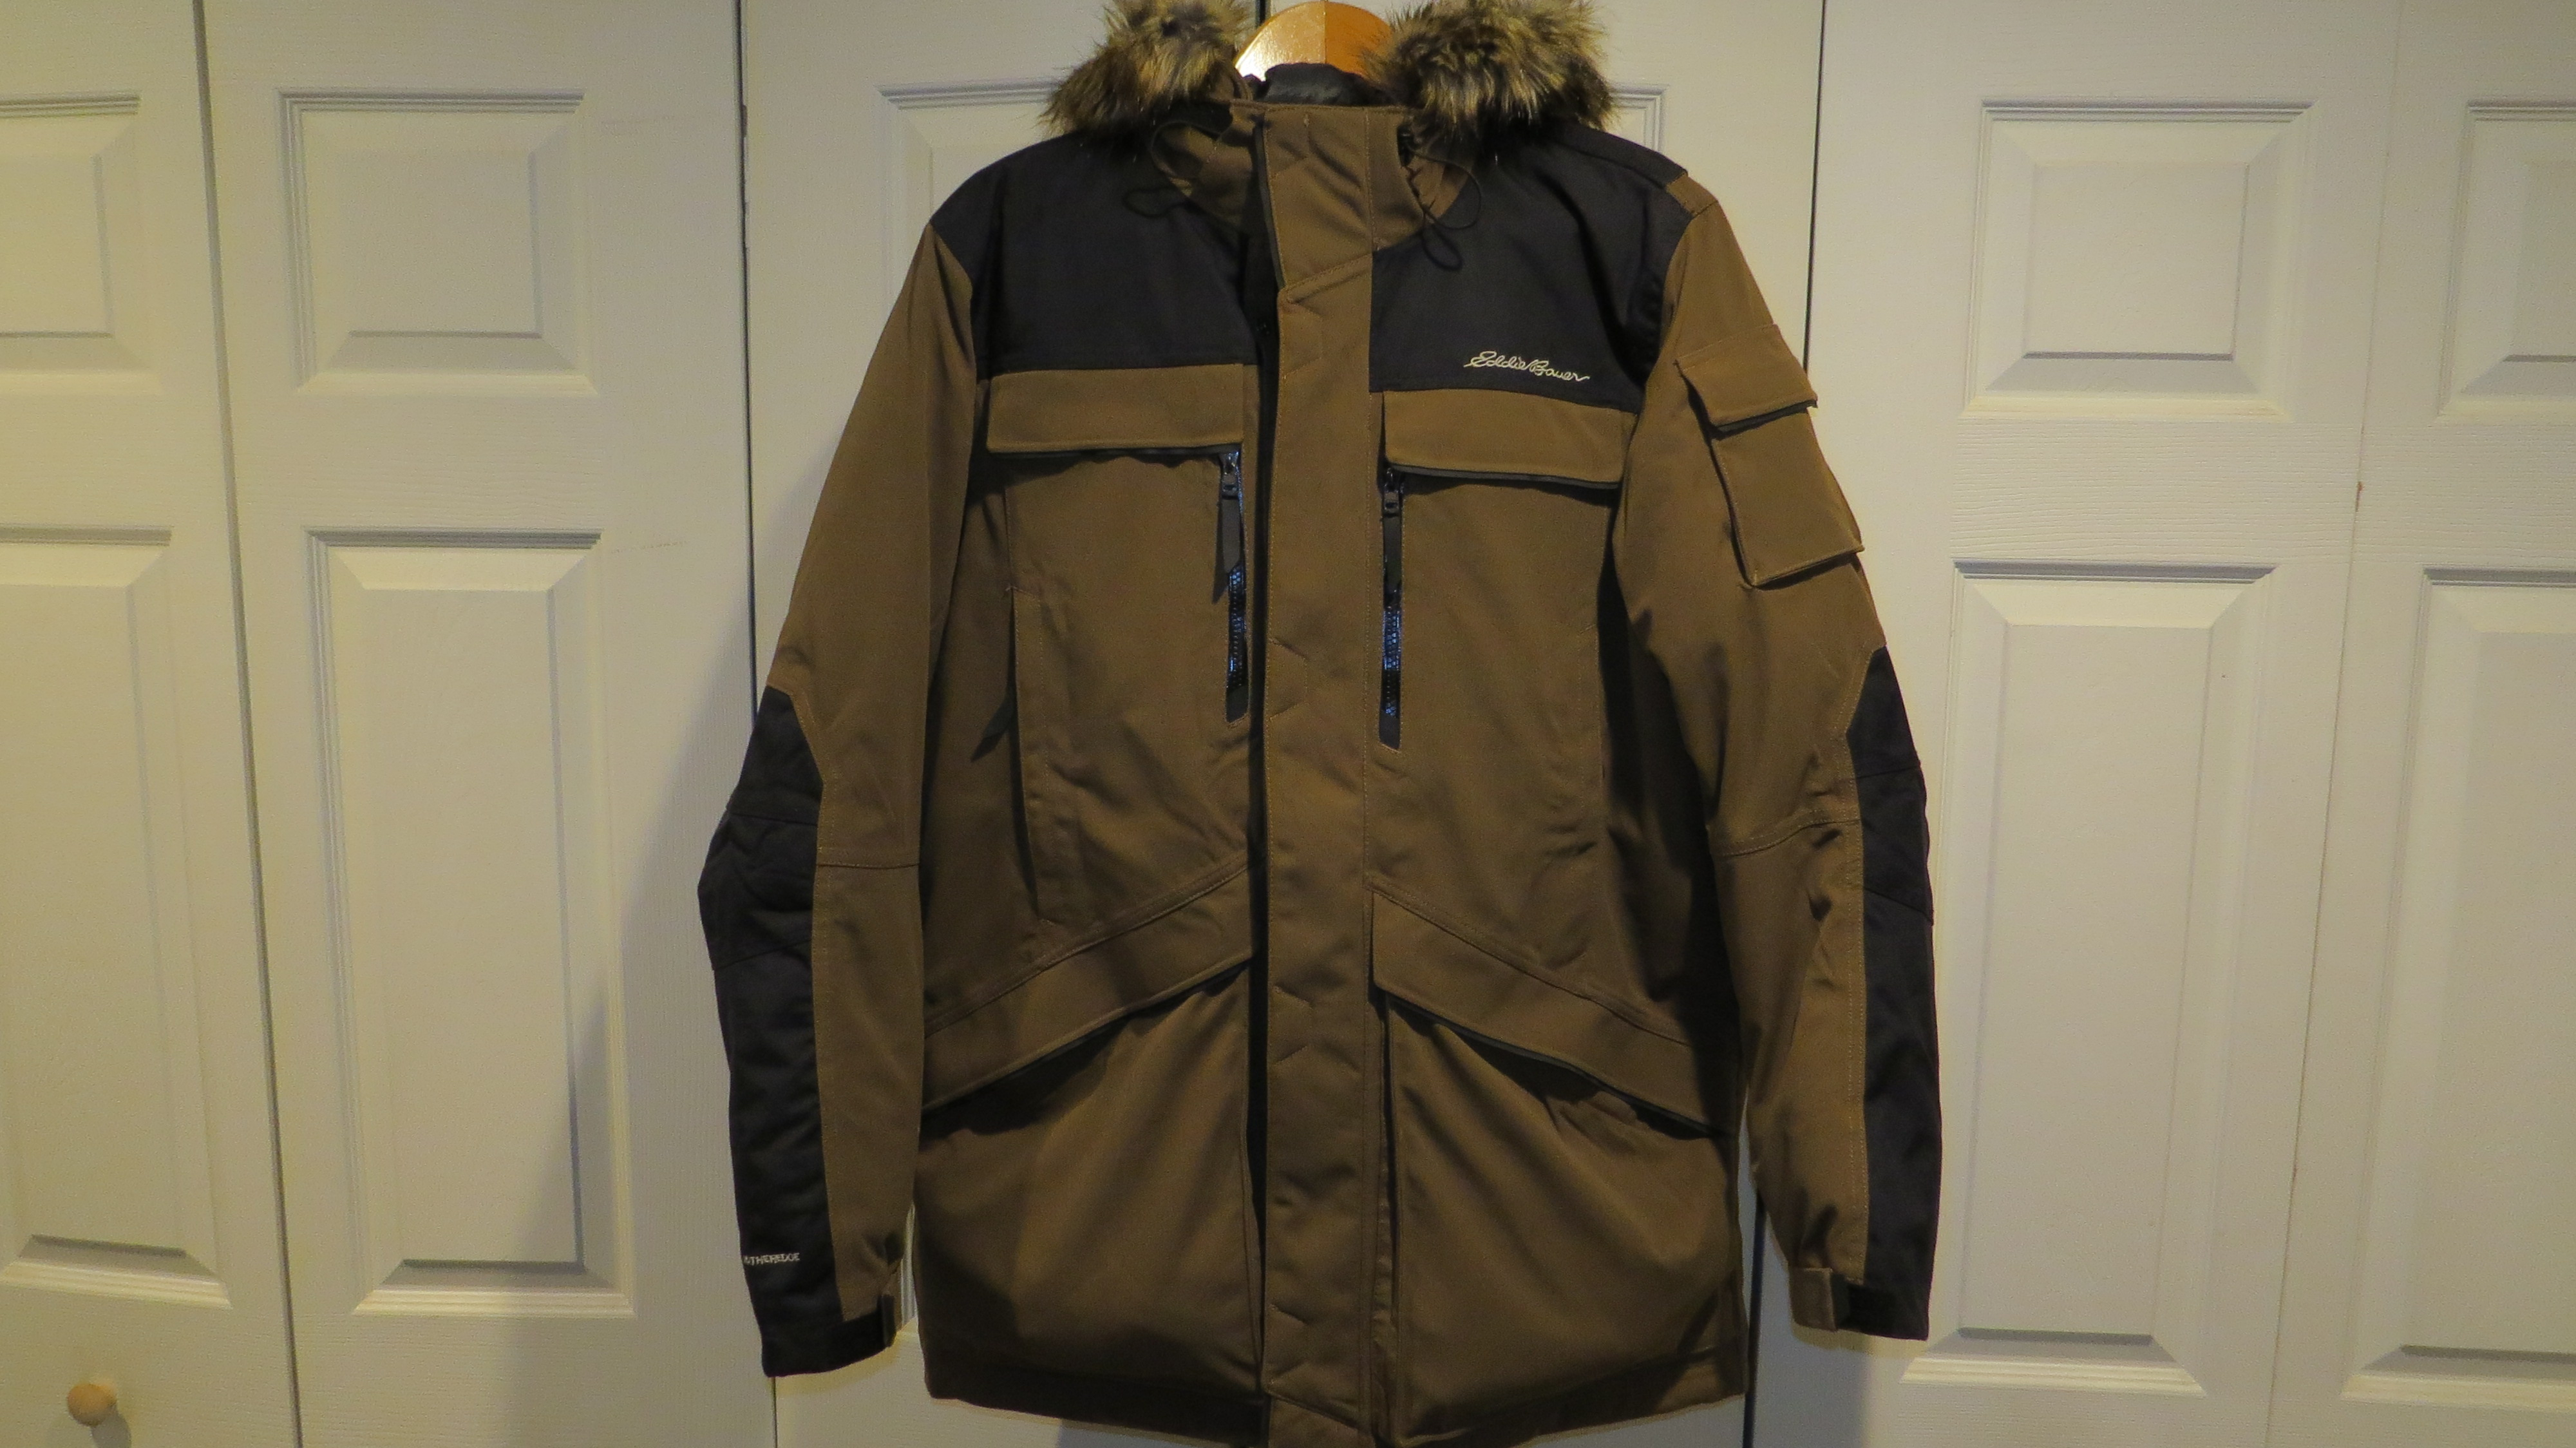 ae4c452511a Eddie Bauer's Top Parkas For Survival in Winter Cold